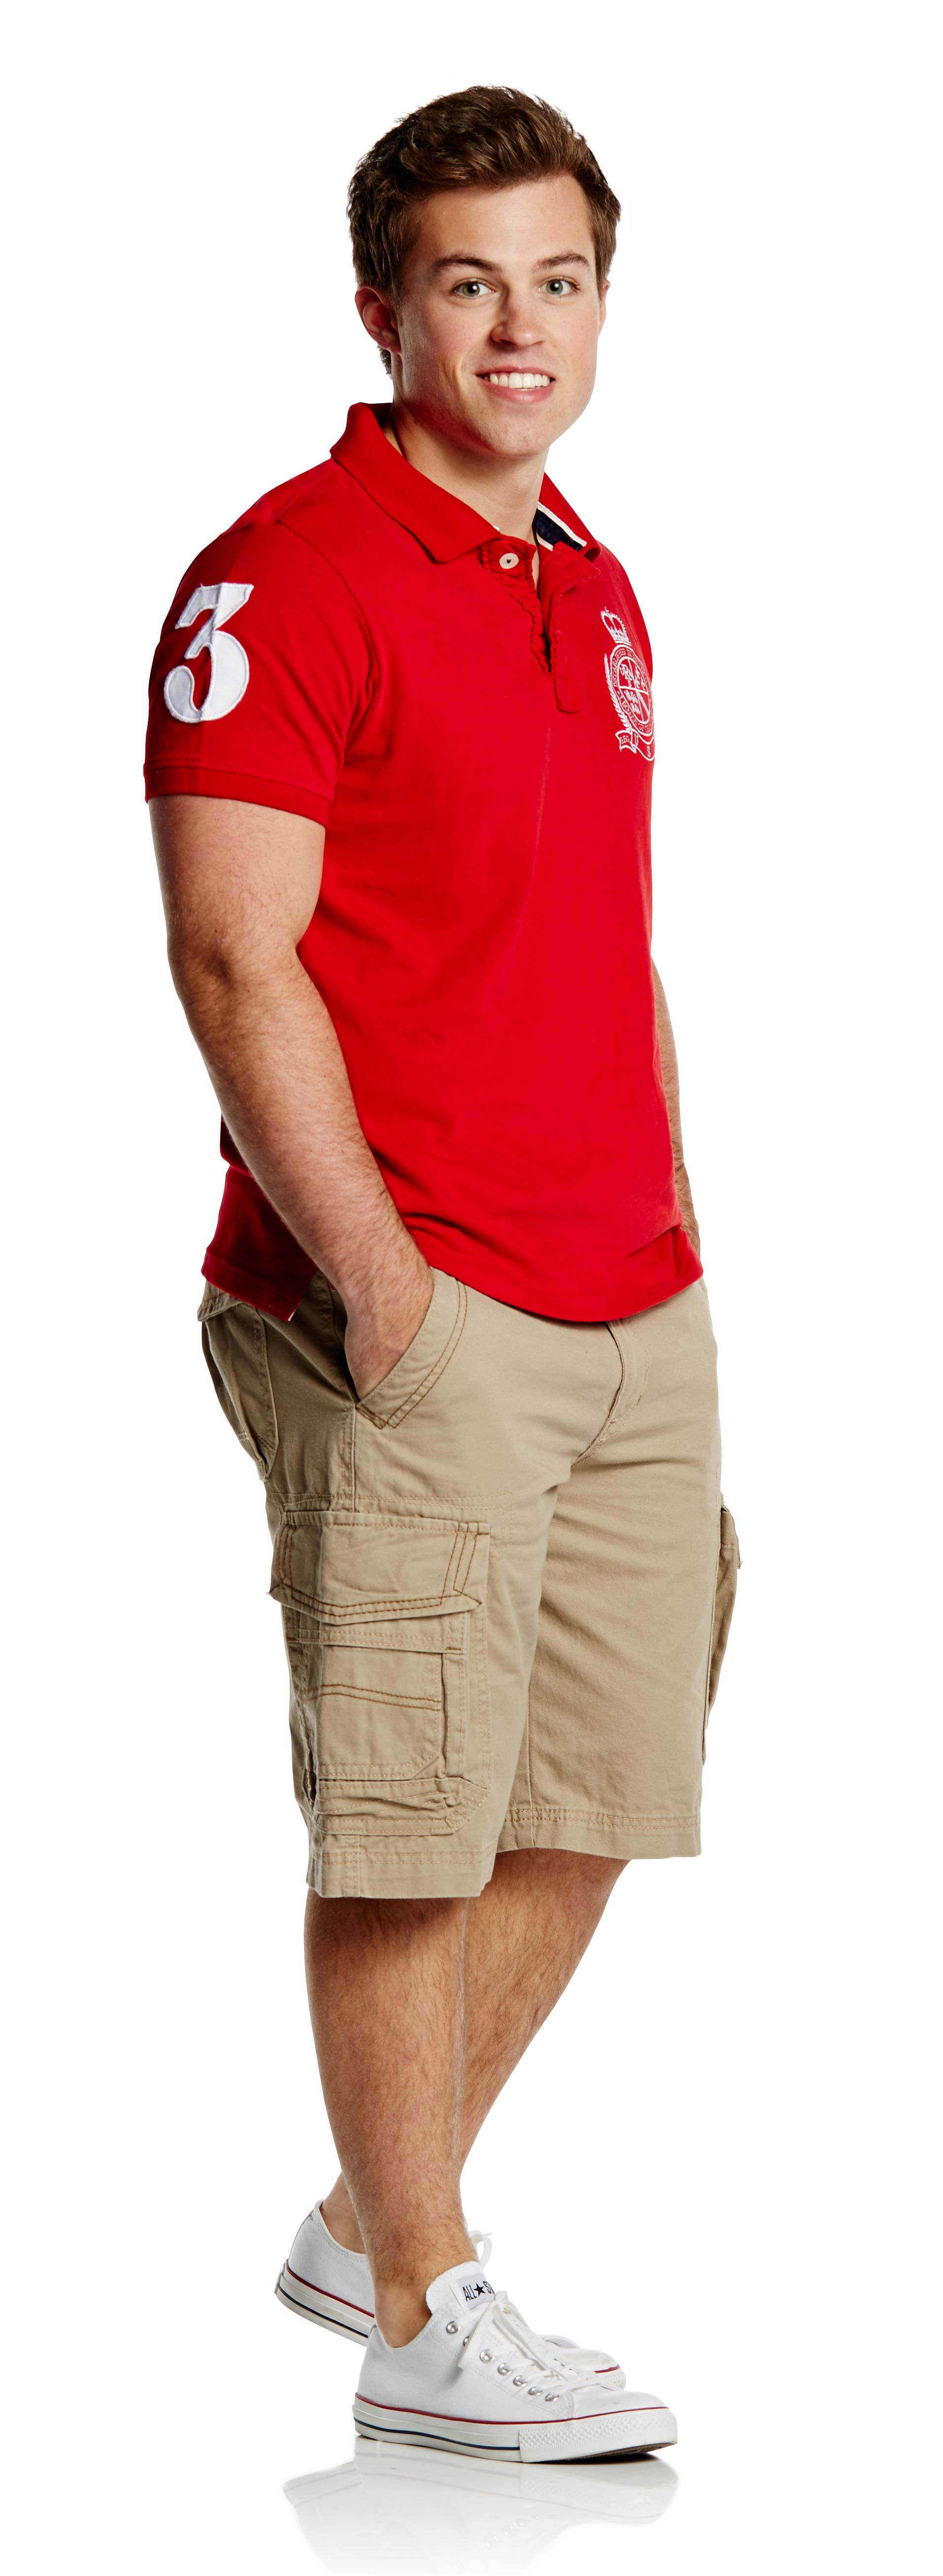 young mens shirts in various colors find your favorite